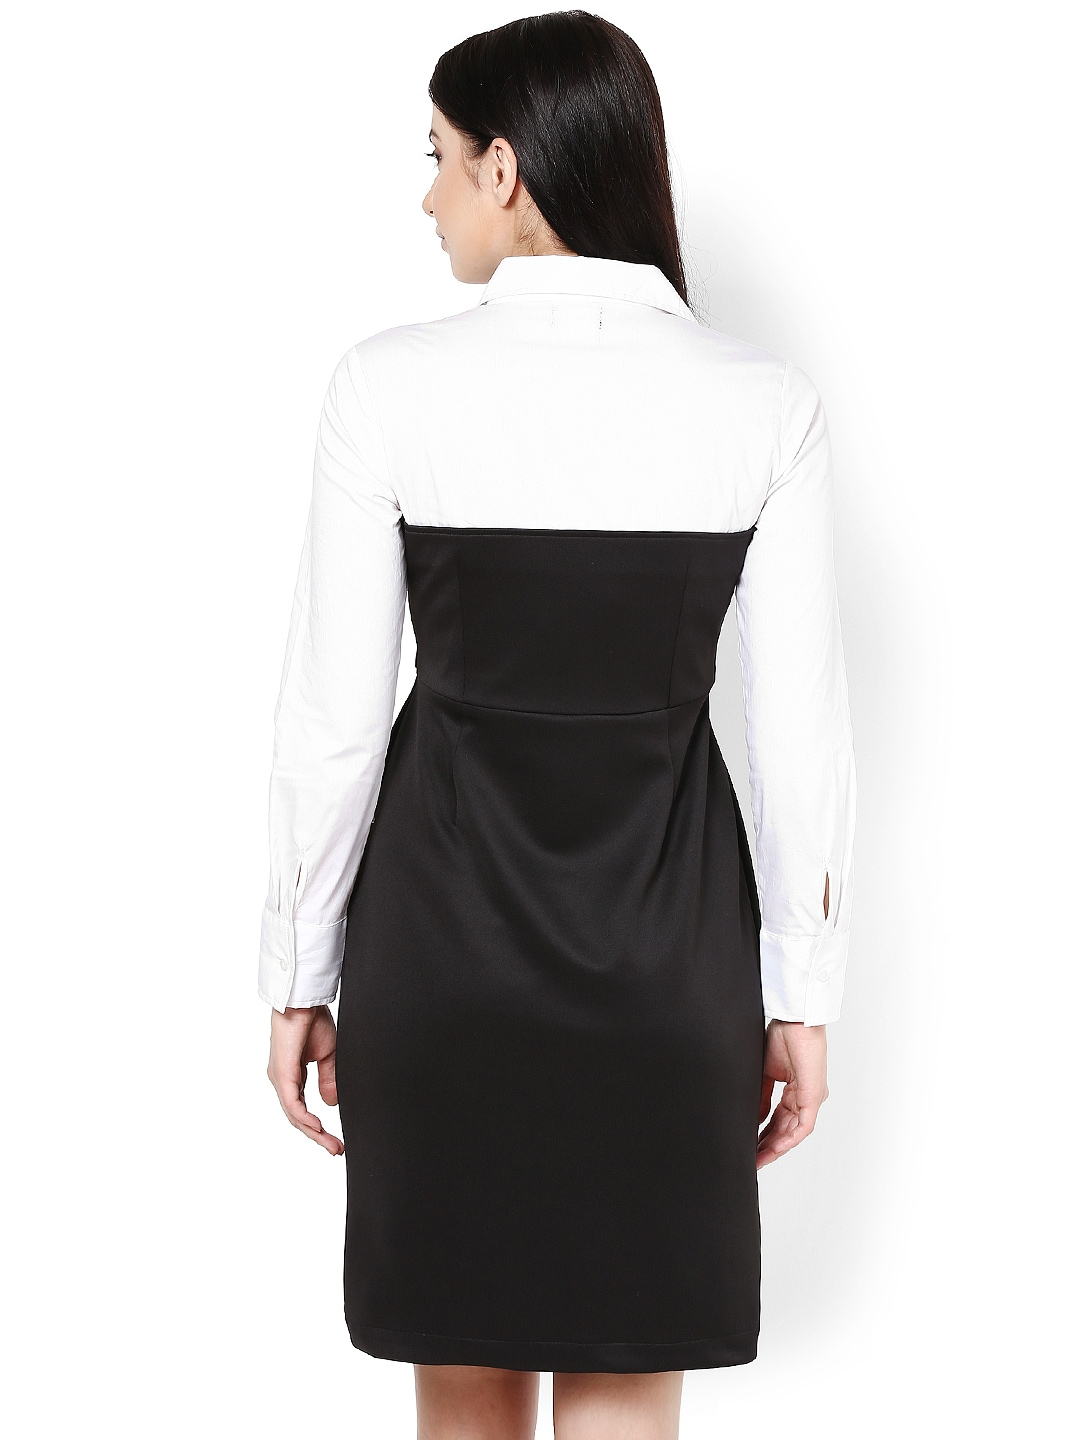 Myntra kaaryah black white shirt dress 703822 buy for Buy white dress shirt